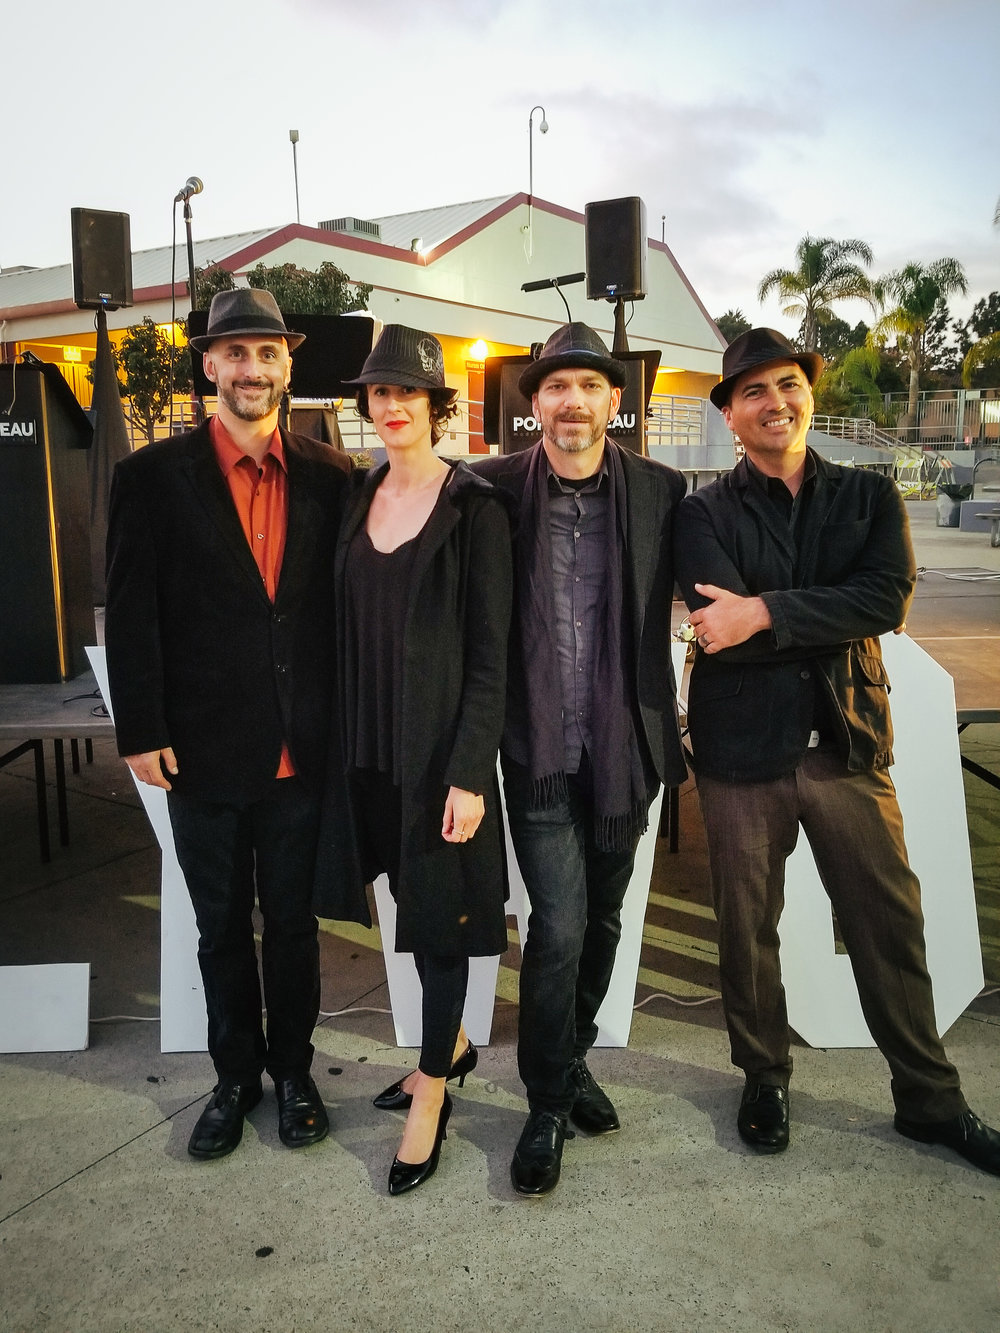 Pop Nouveau Trio with Vocalist Kate Campbell